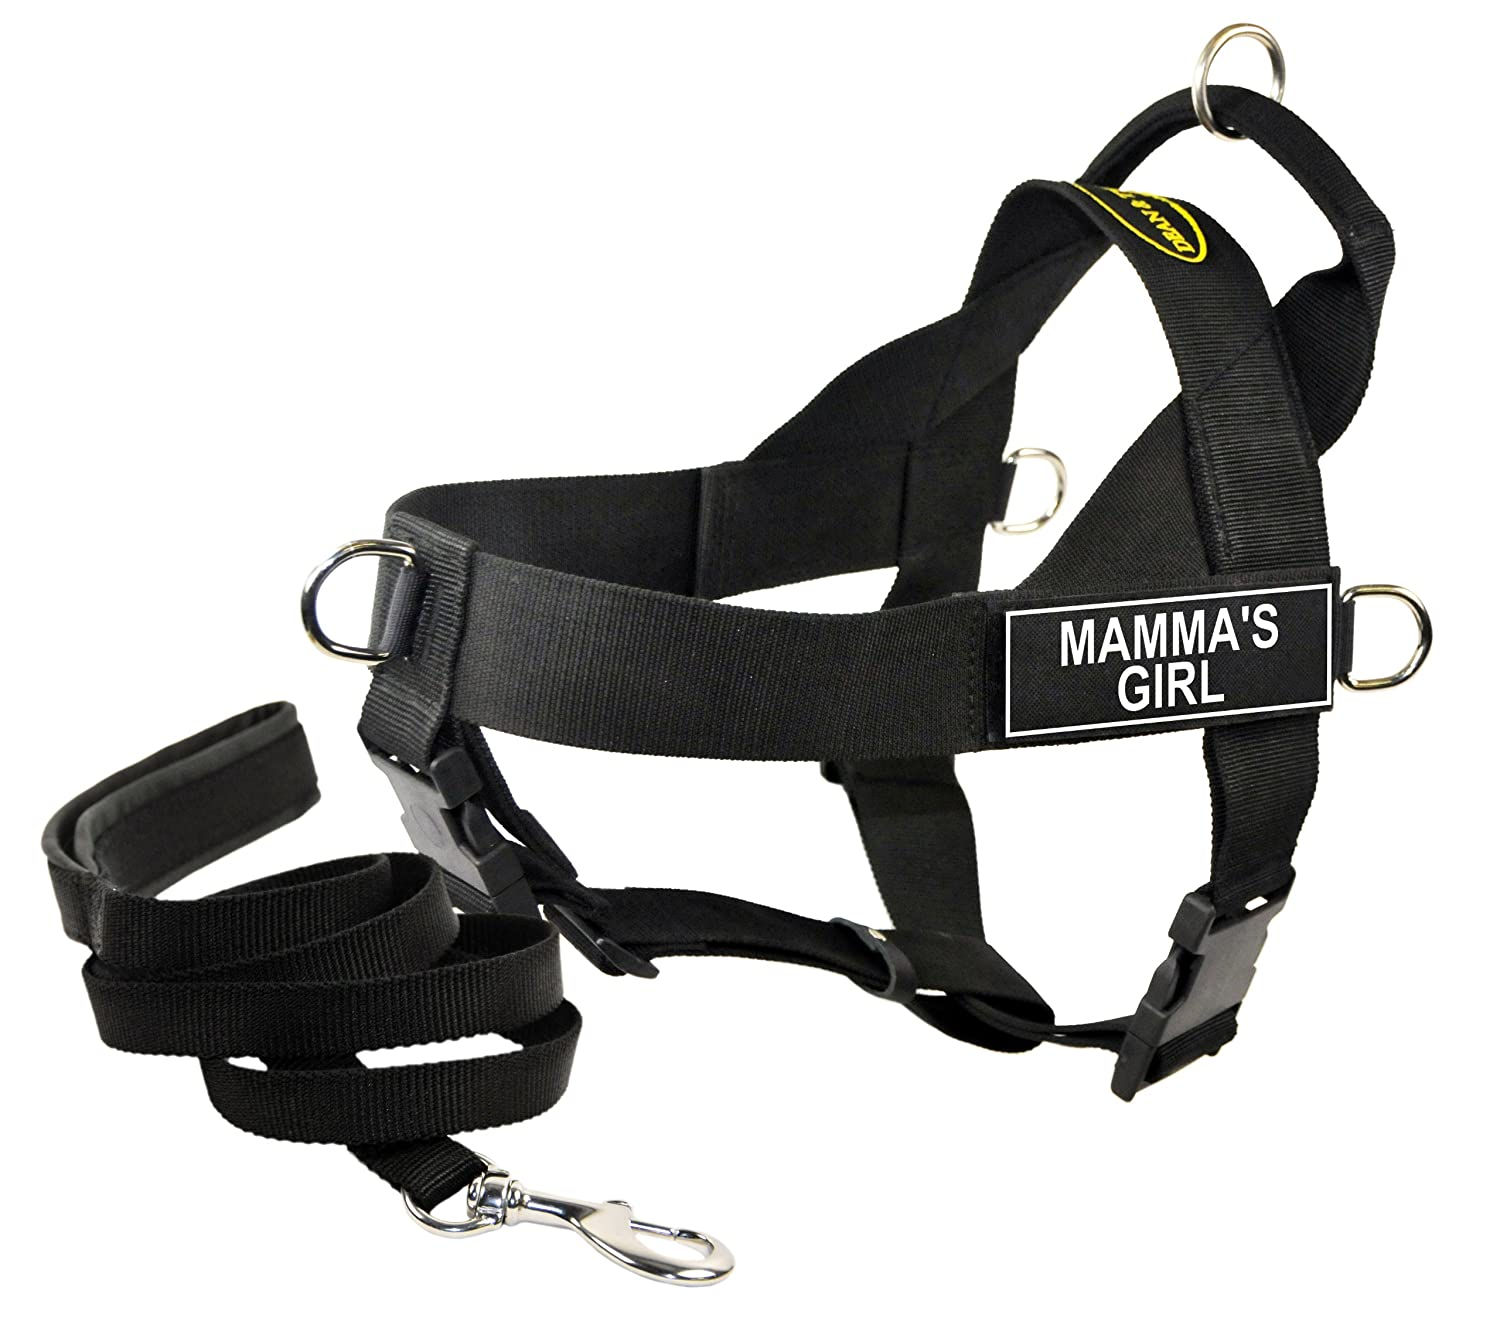 Dean & Tyler's DT Universal MAMMA'S GIRL Harness, Large, with 6 ft Padded Puppy Leash.